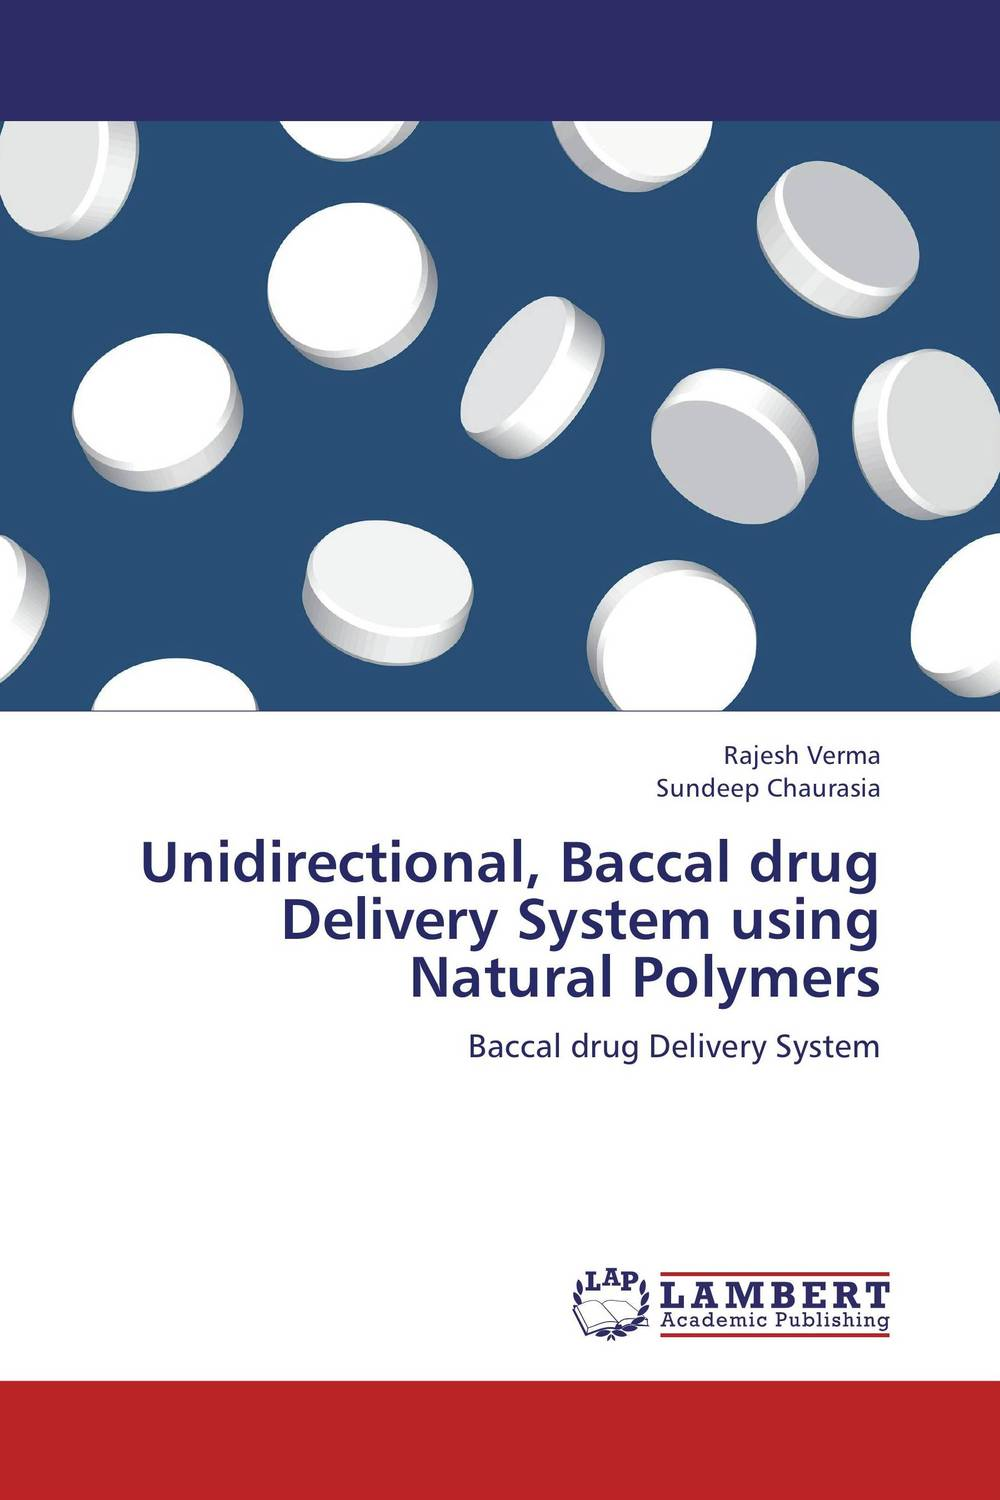 Unidirectional, Baccal drug Delivery System using Natural Polymers kamal singh rathore shreya patel and naisarg pujara nanoparticulate drug delivery system